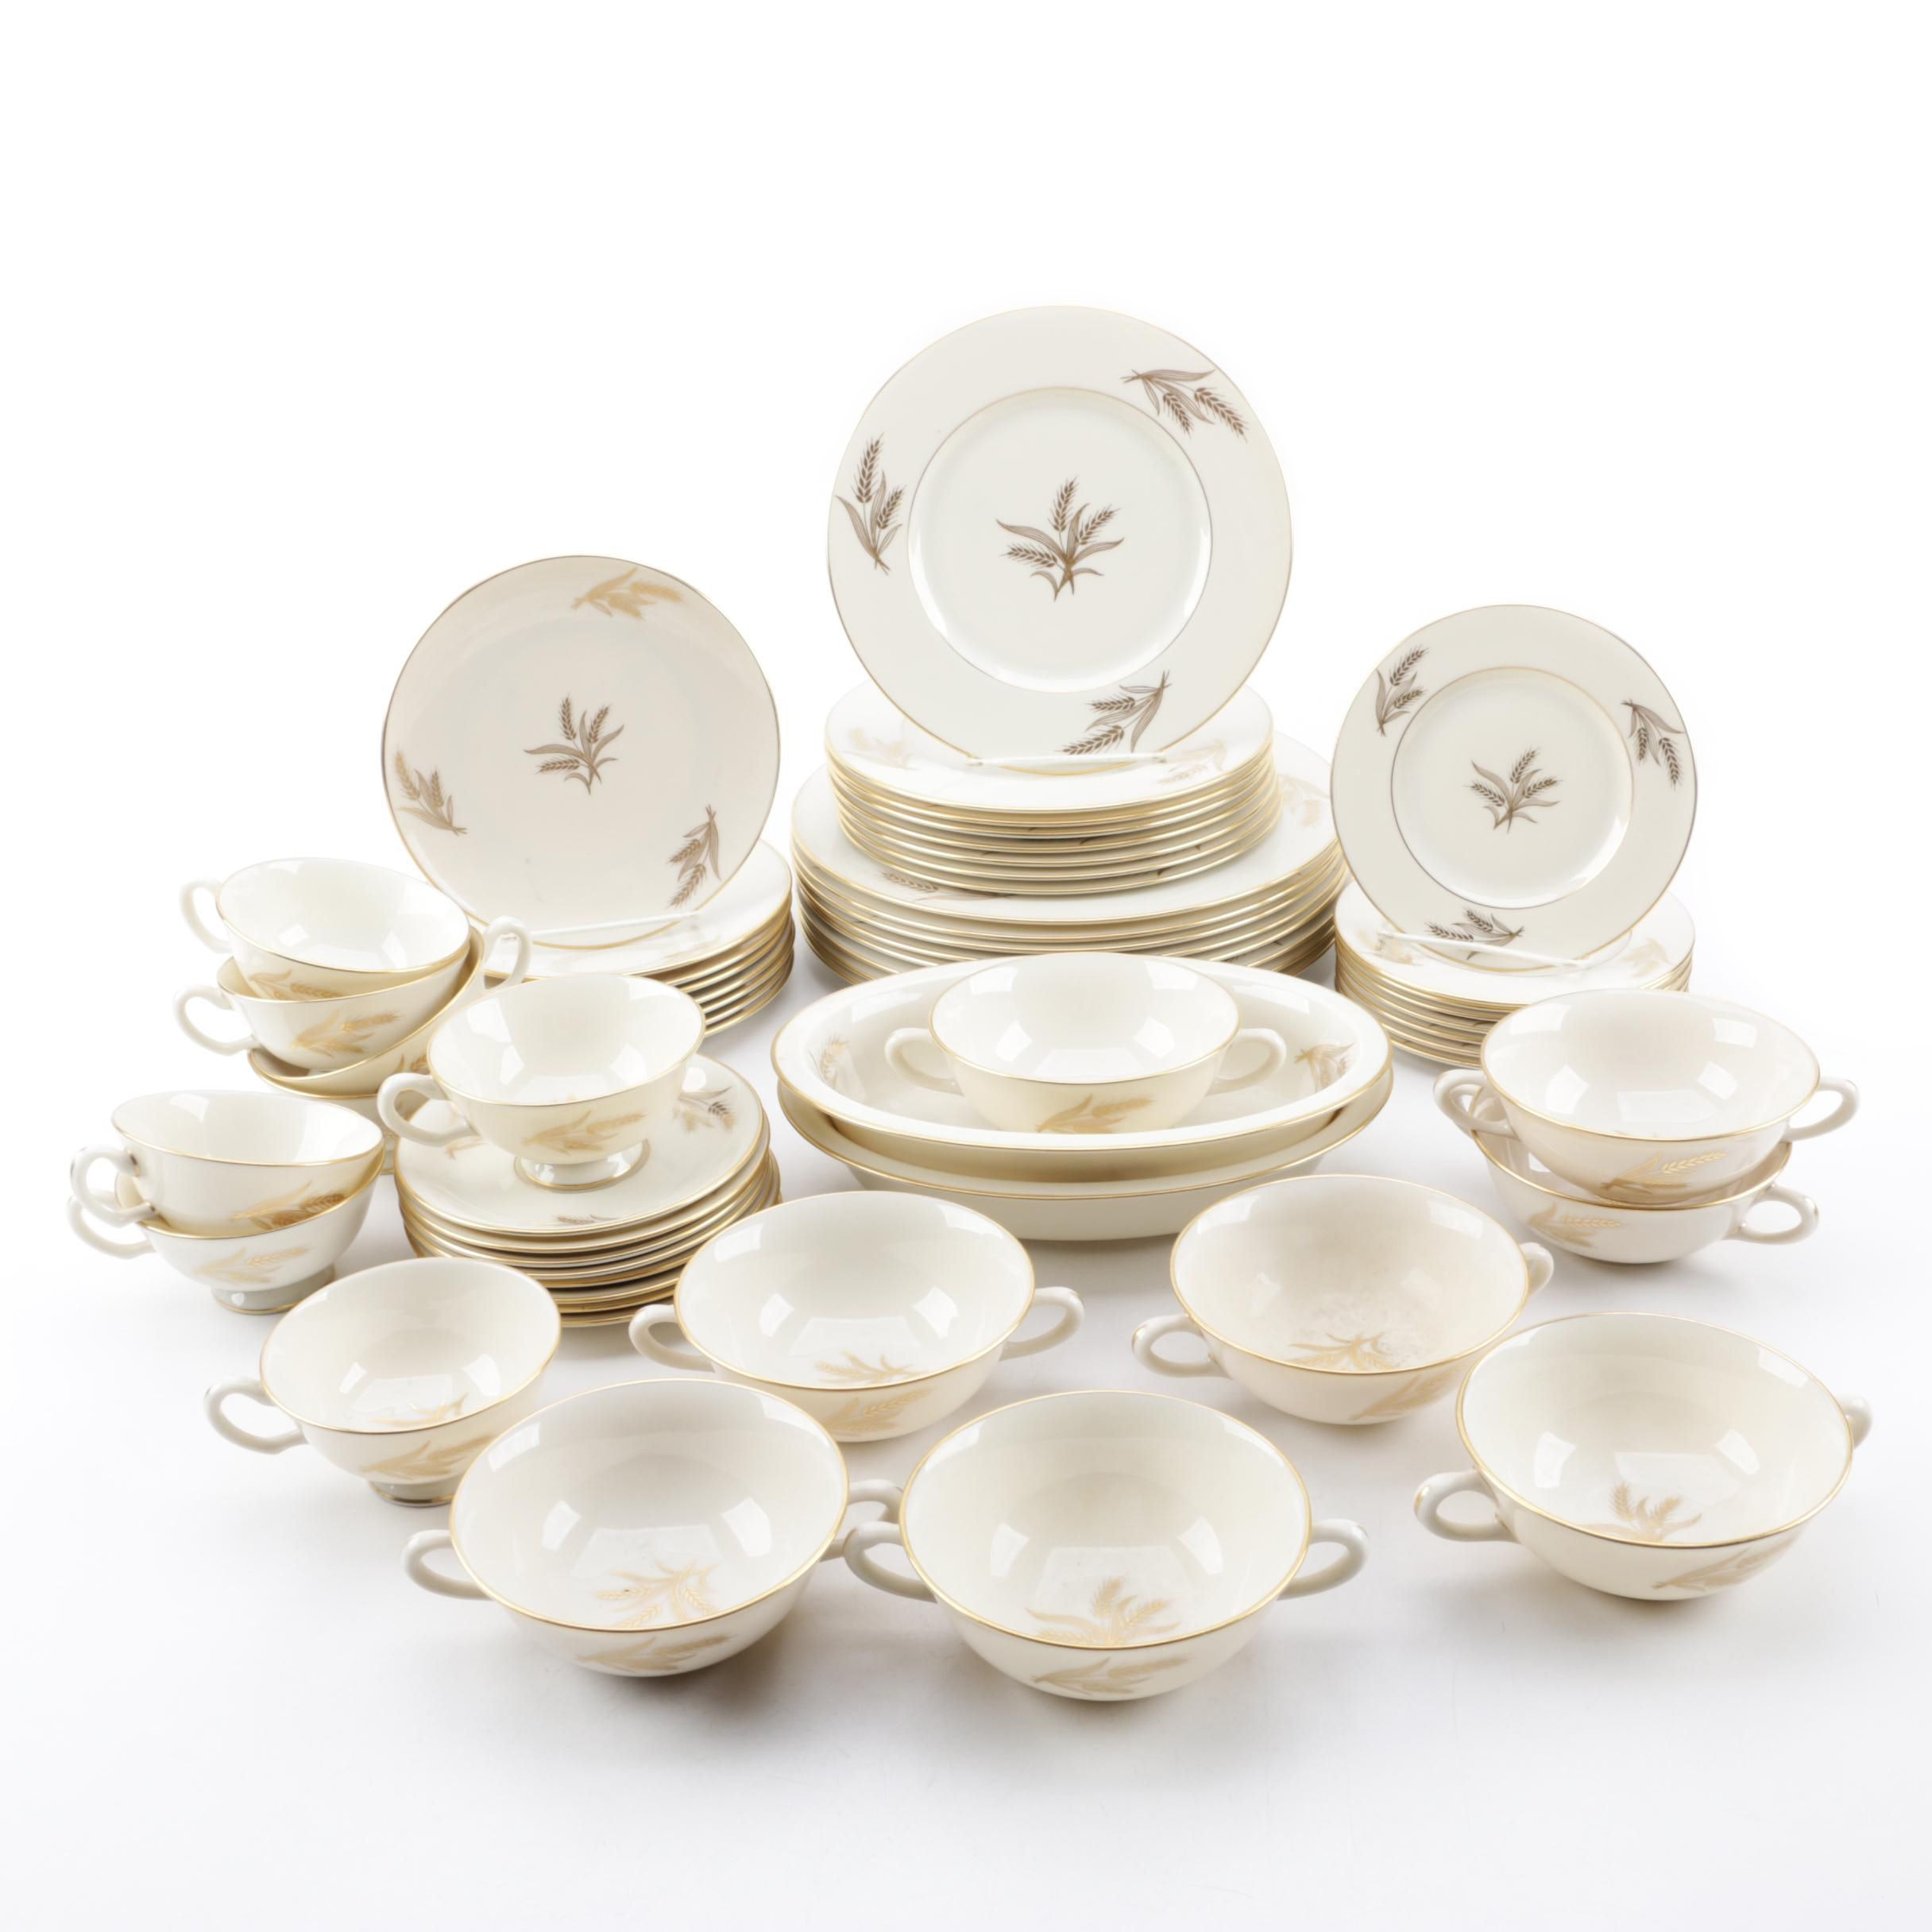 "Mid to Late 20th Century Lenox ""Harvest"" Porcelain Dinnerware Service for Eight"